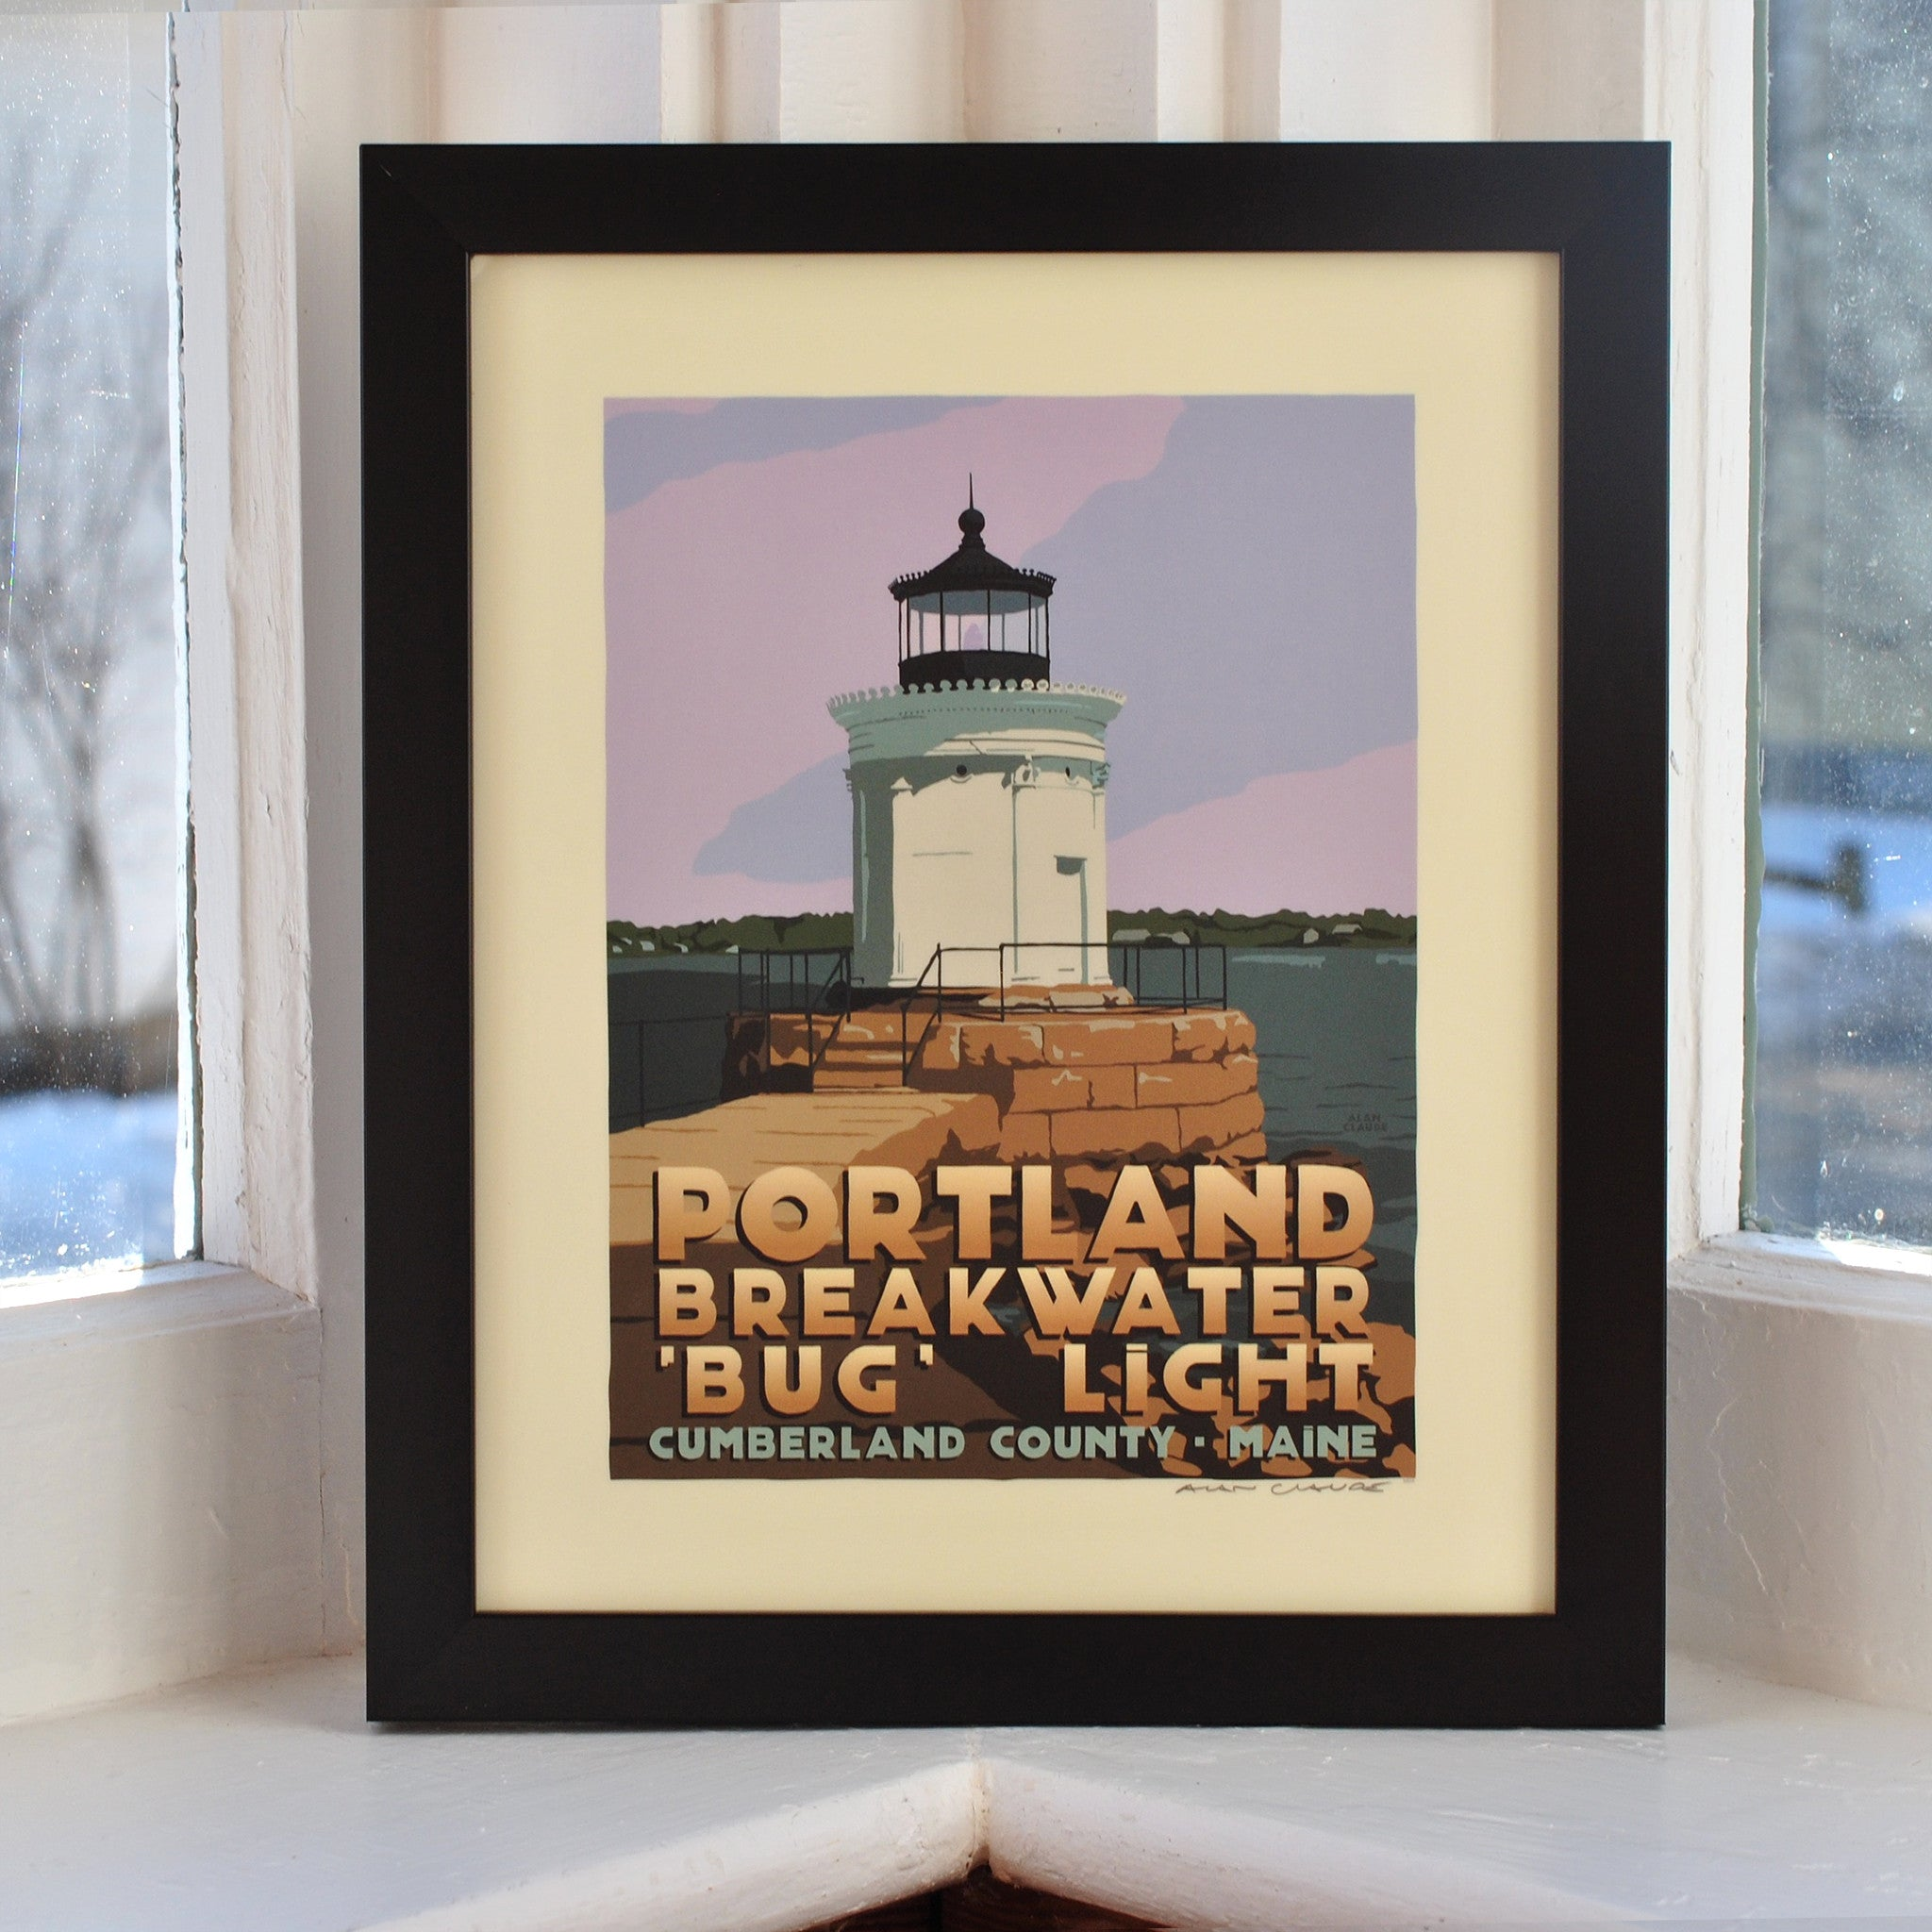 "Portland Breakwater Bug Light Art Print 8"" x 10"" Framed Travel Poster - Maine"